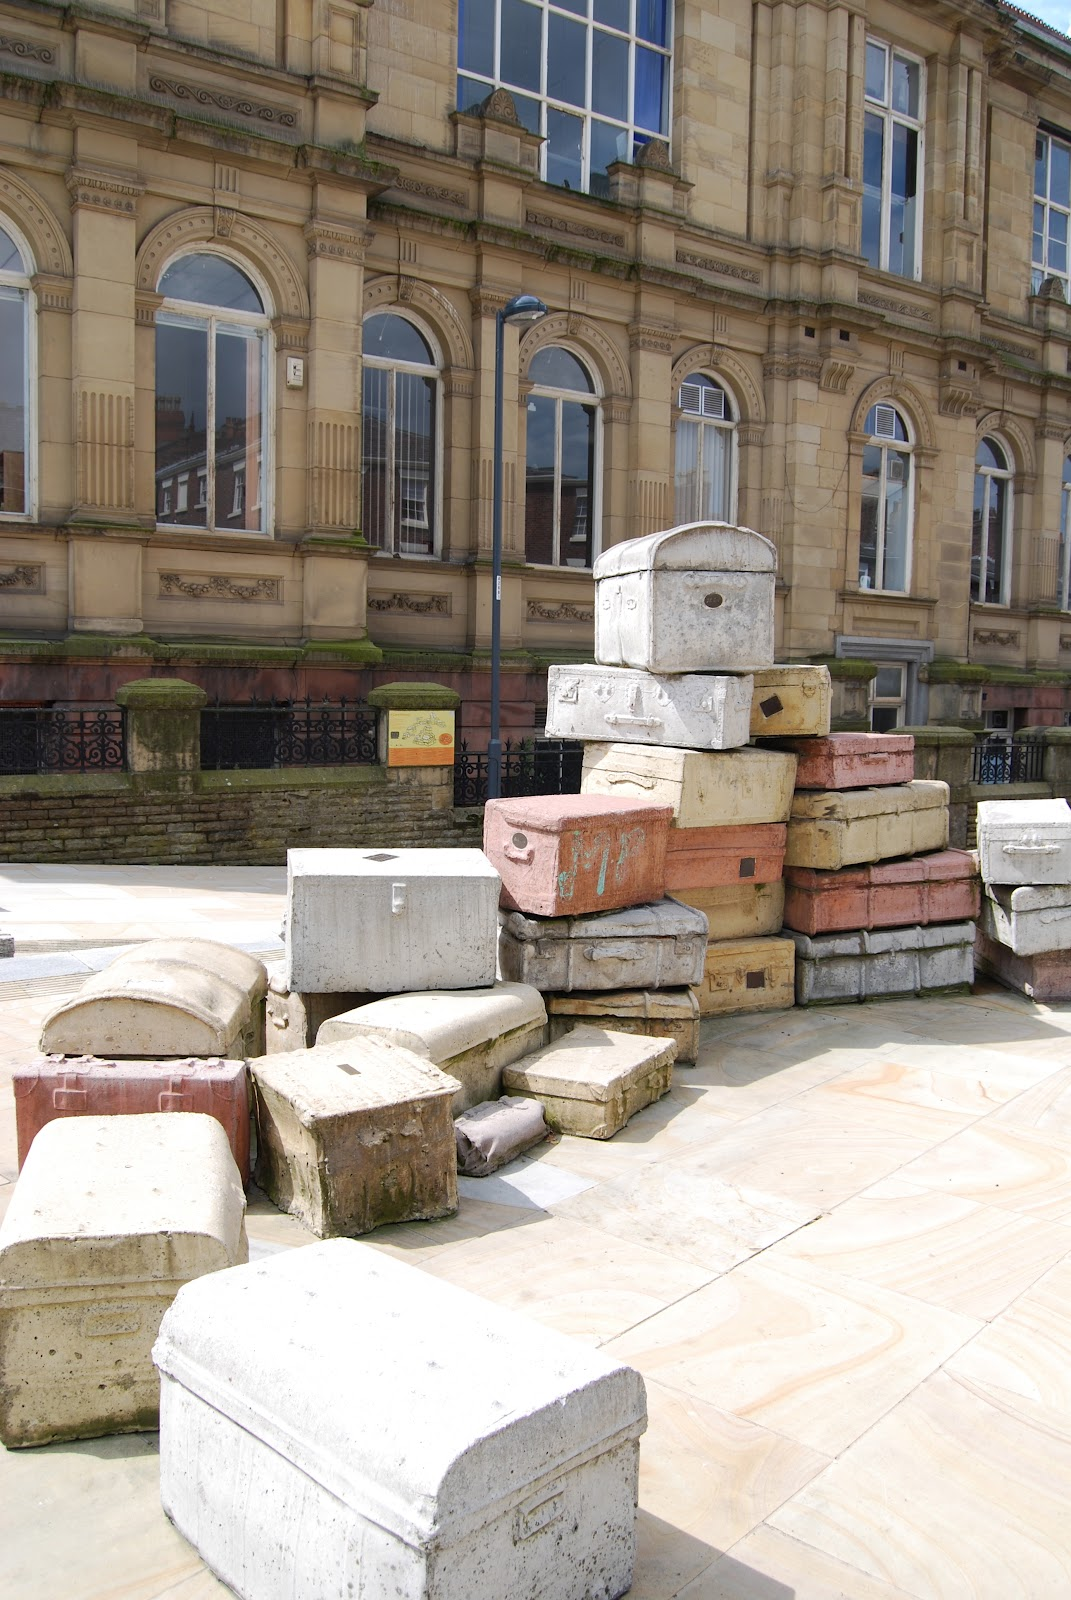 A Case History by John King in Liverpool